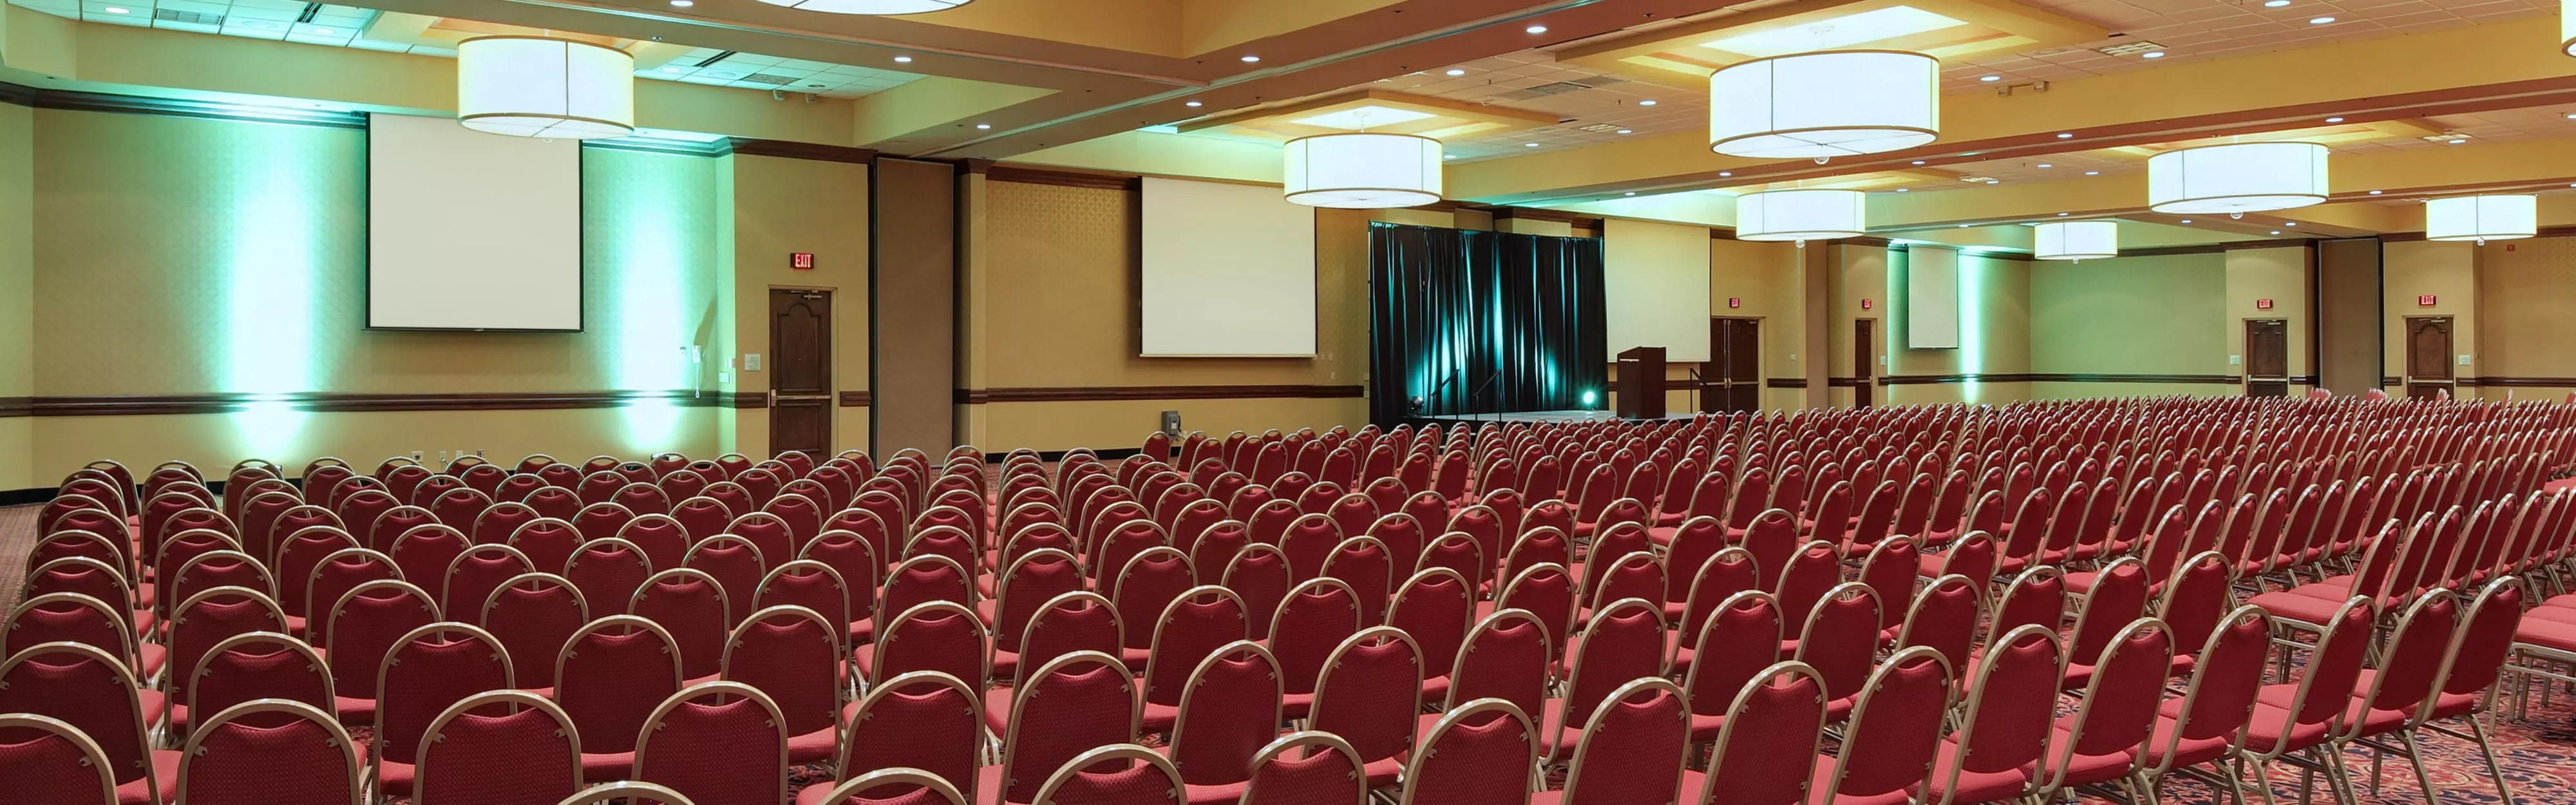 Holiday Inn Springdale Fayetteville Area Hotel Groups